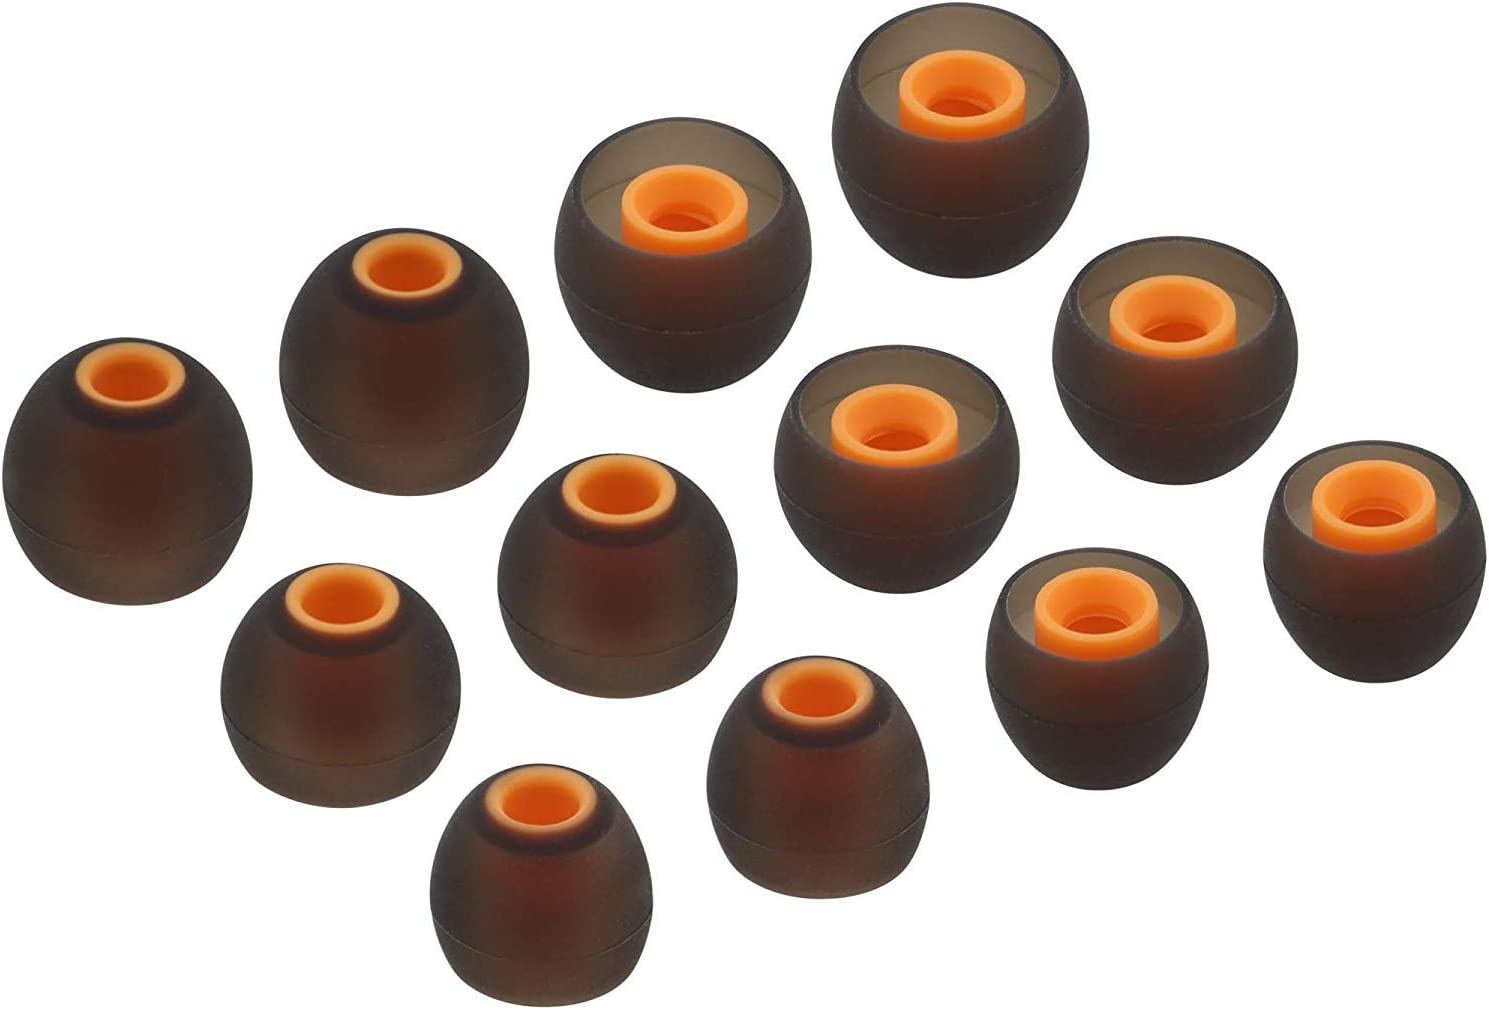 ALXCD Ear Tips for JBL Lifestyle Tune 110BT in-Ear Headphones 6 Pairs S M L Sizes Replacement Silicone Earbud Tips Fit for JBL 110BT,Black//Orange